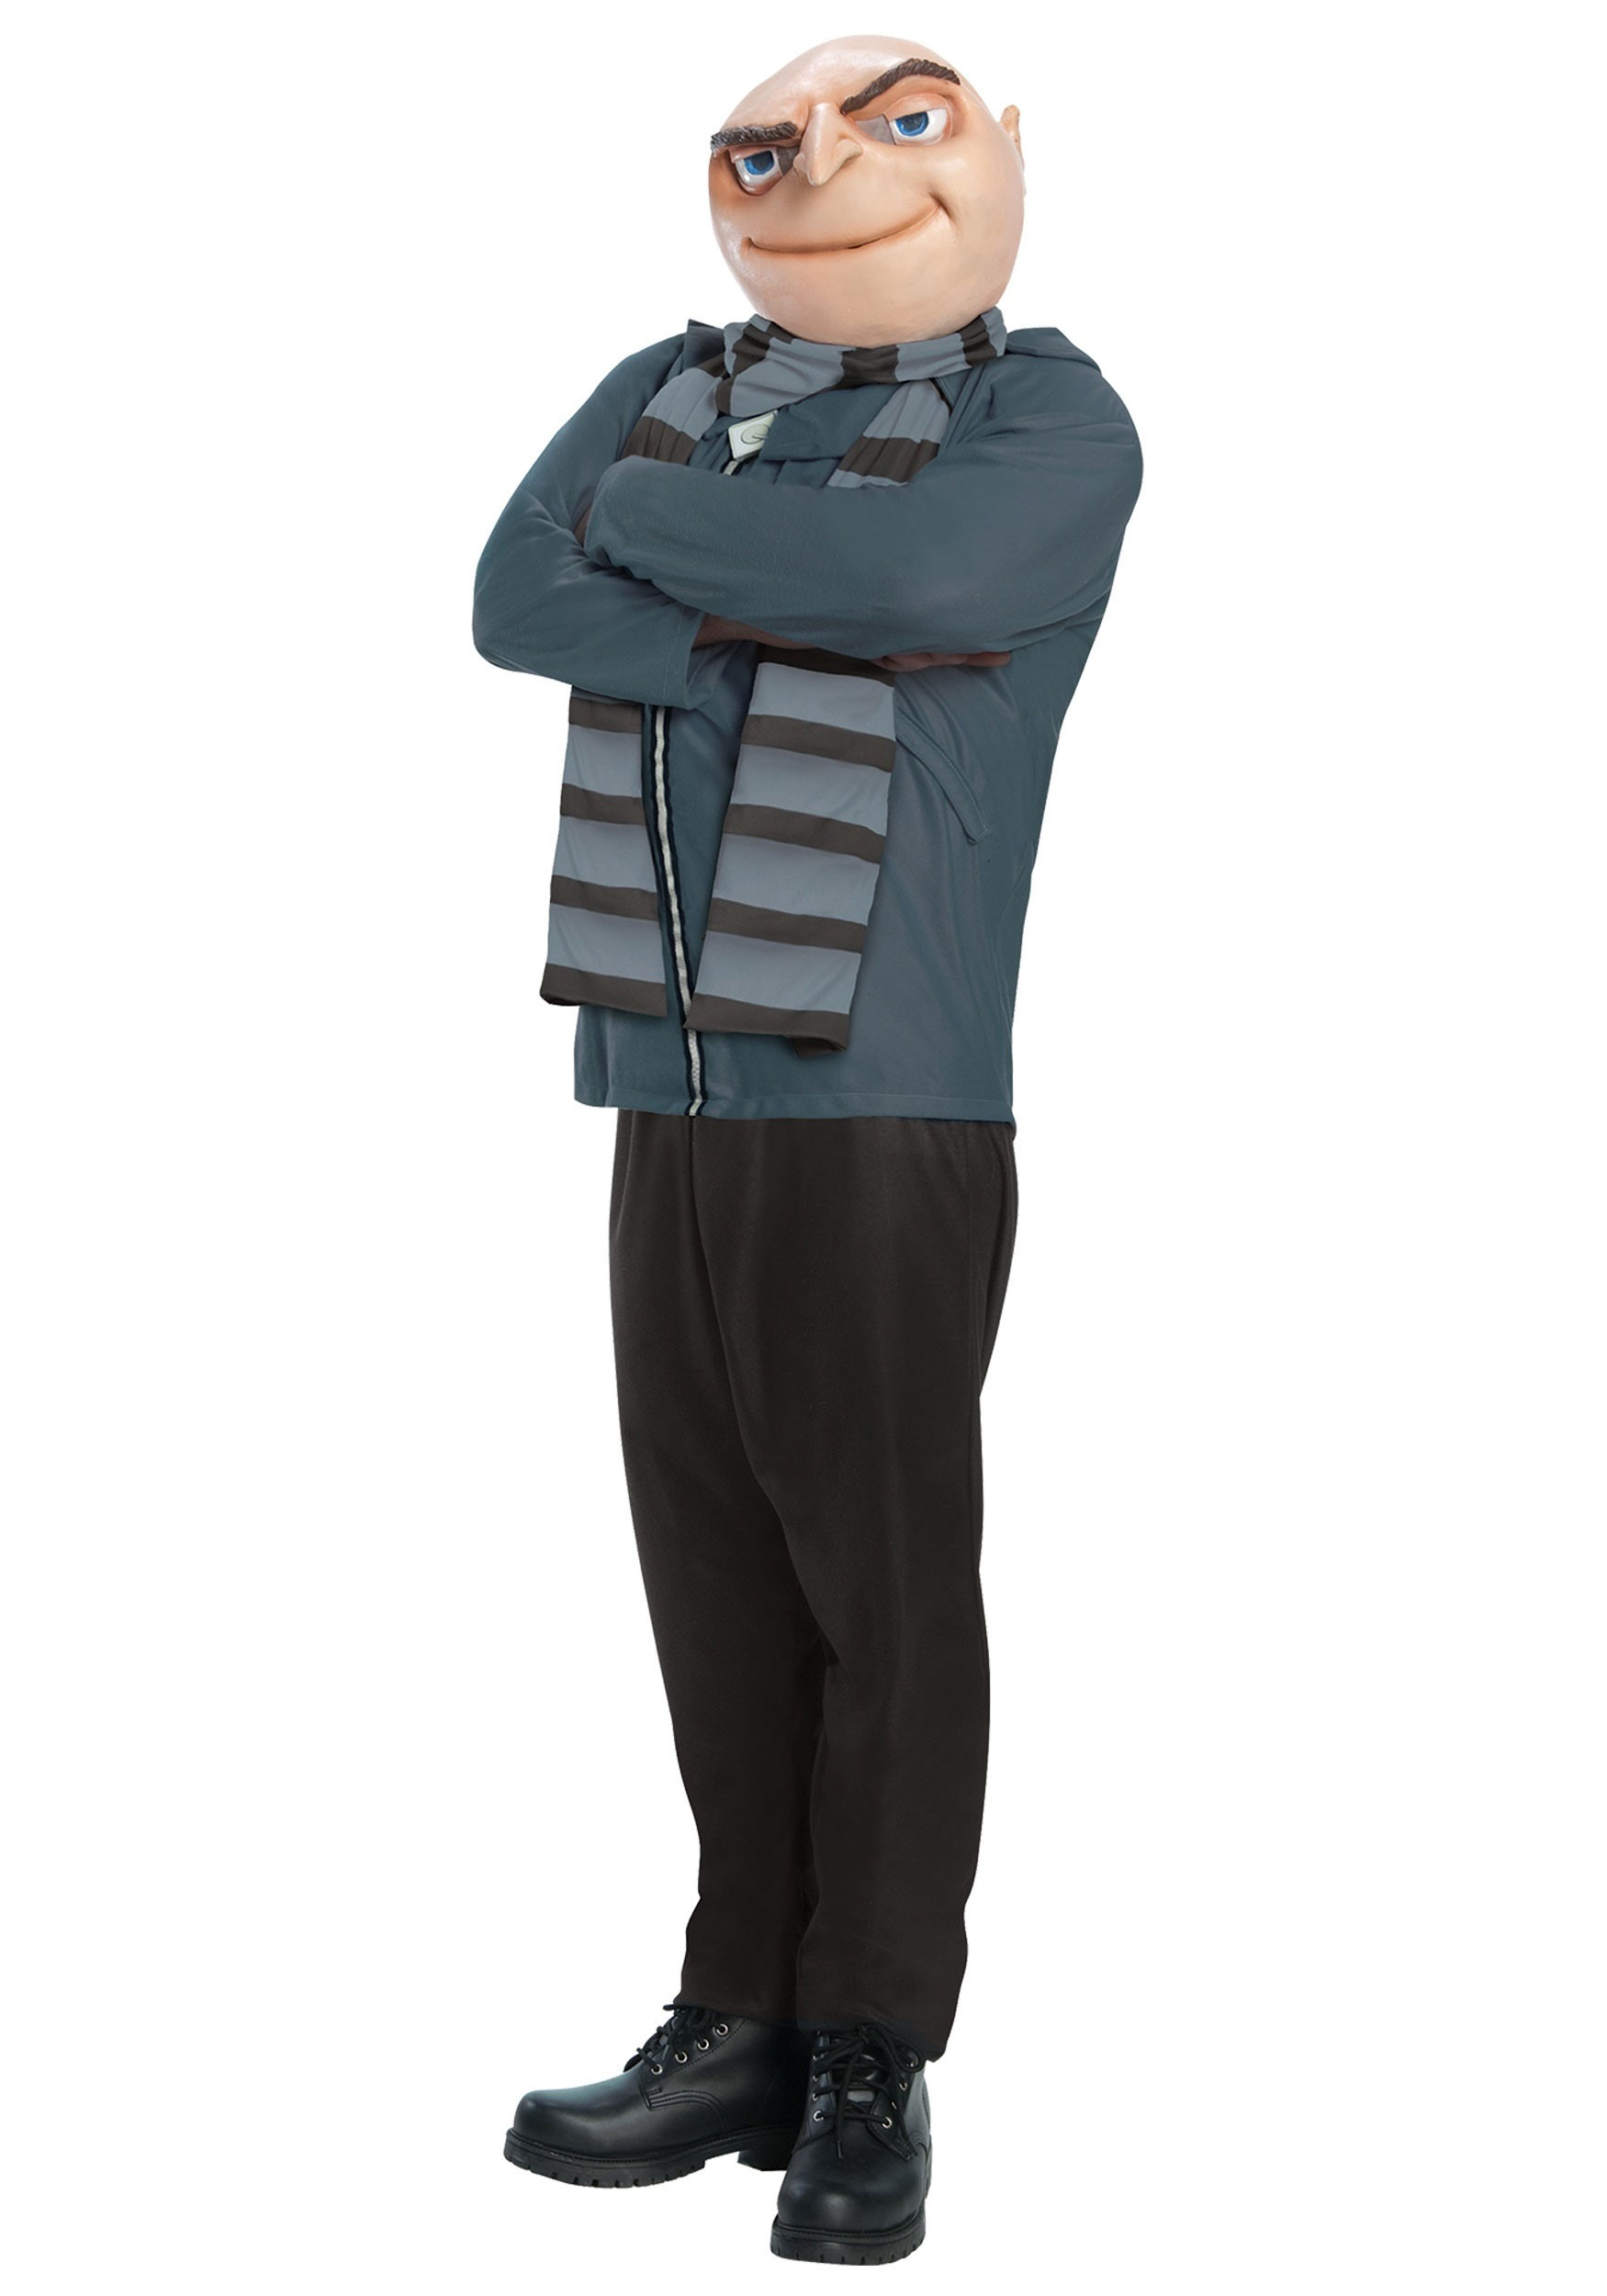 Adult Gru Costume  sc 1 st  Halloween Costumes UK : minion costume boy  - Germanpascual.Com